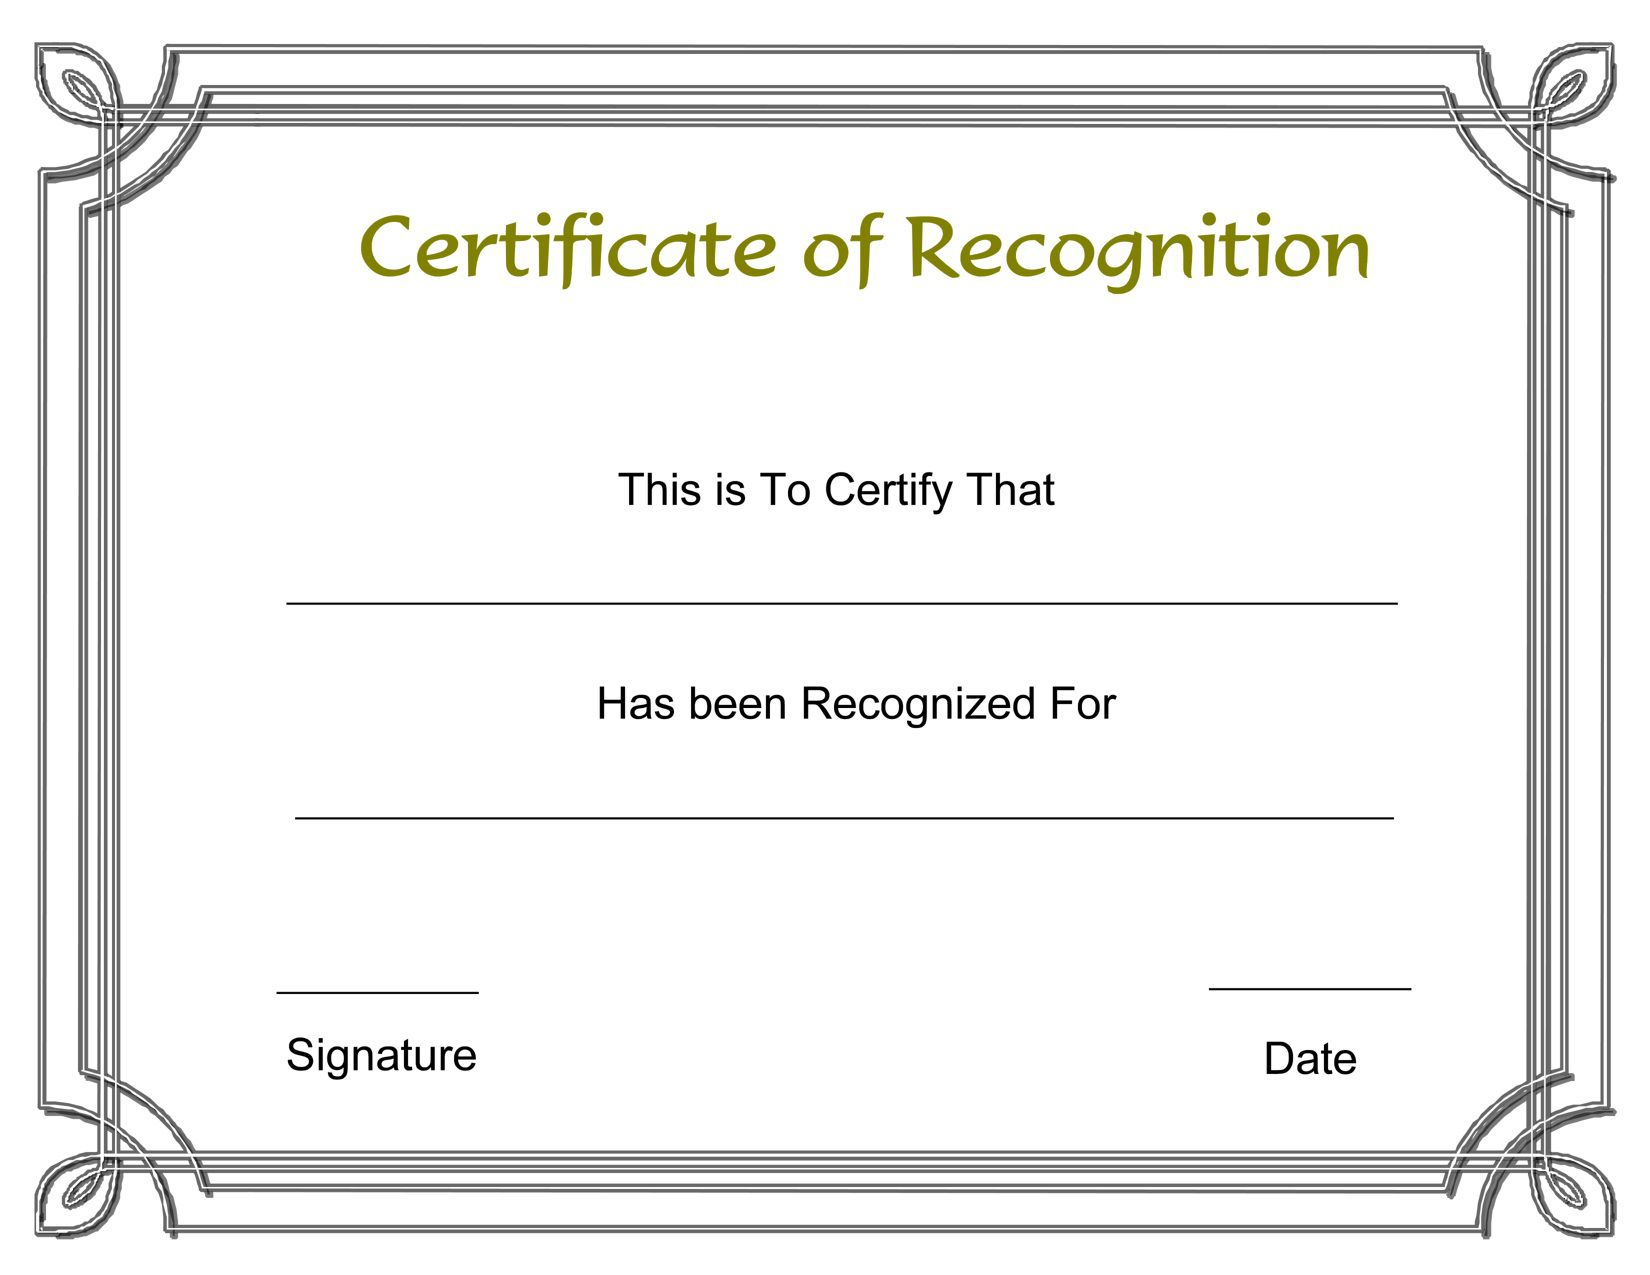 003 Formidable Recognition Certificate Template Free Design  Employee Award Of Download WordFull